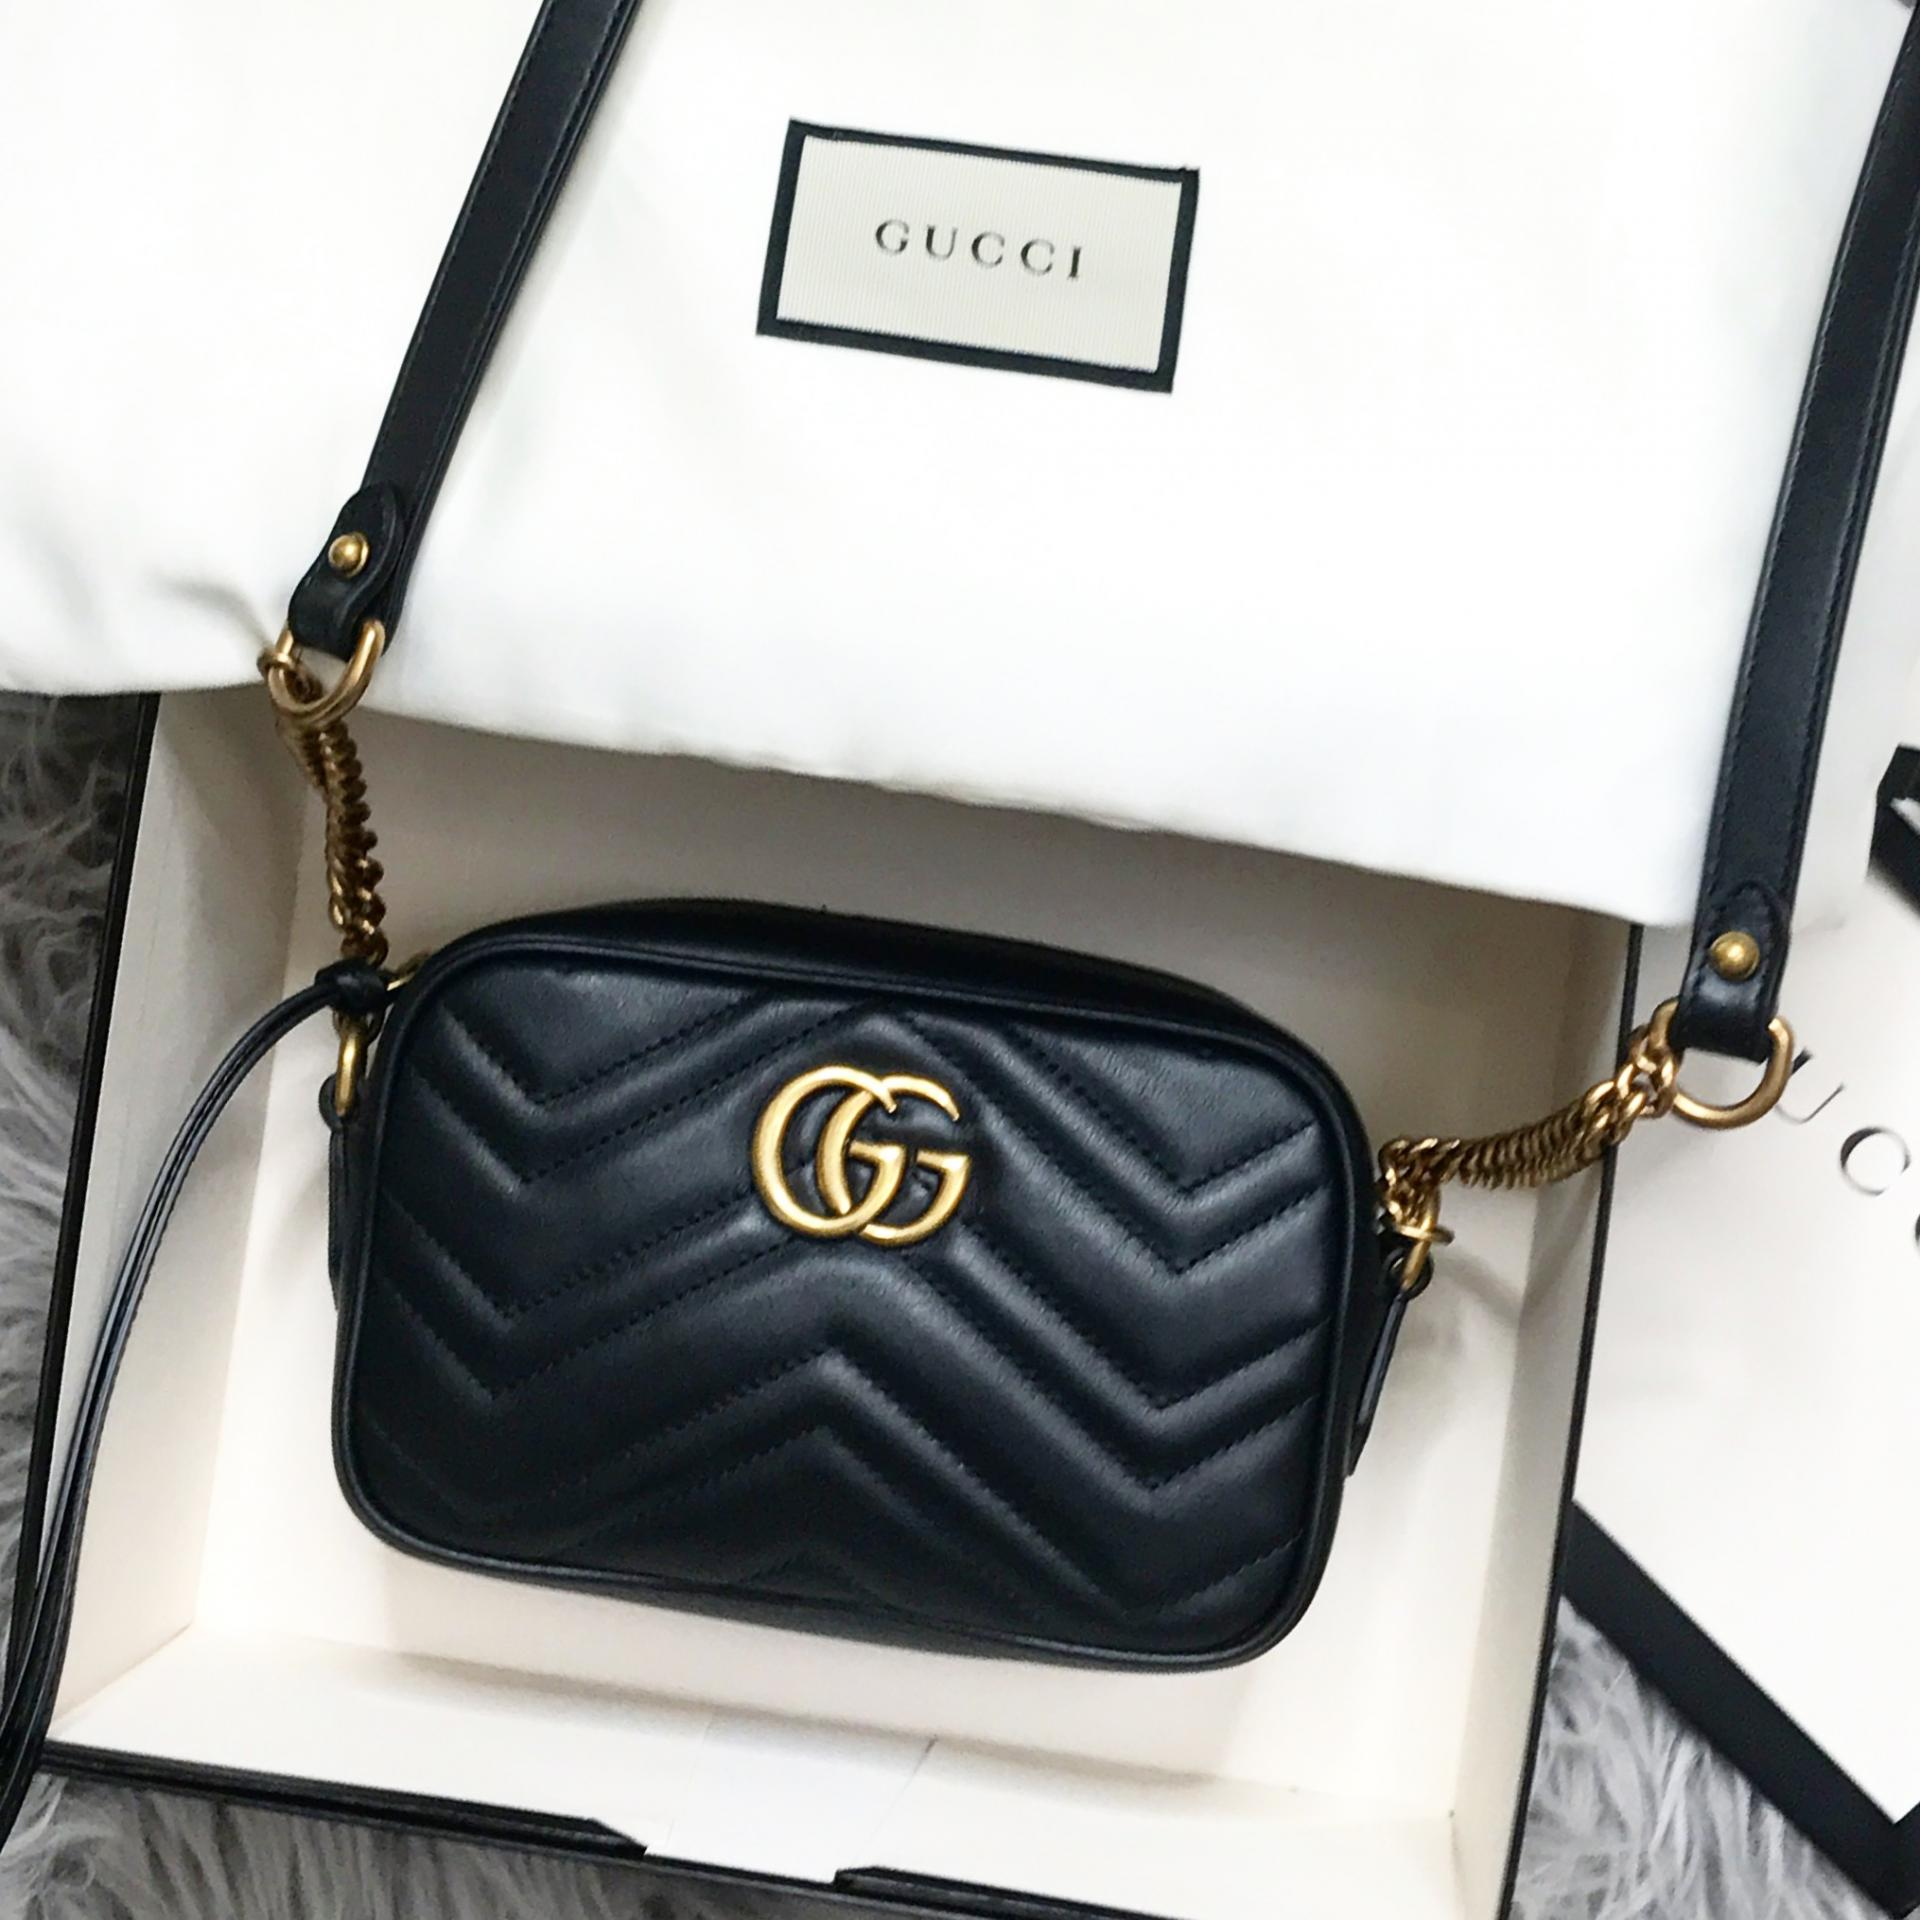 9144b1a1e89 Gucci Marmont Matelassé Mini Bag Review - I Heart Cosmetics